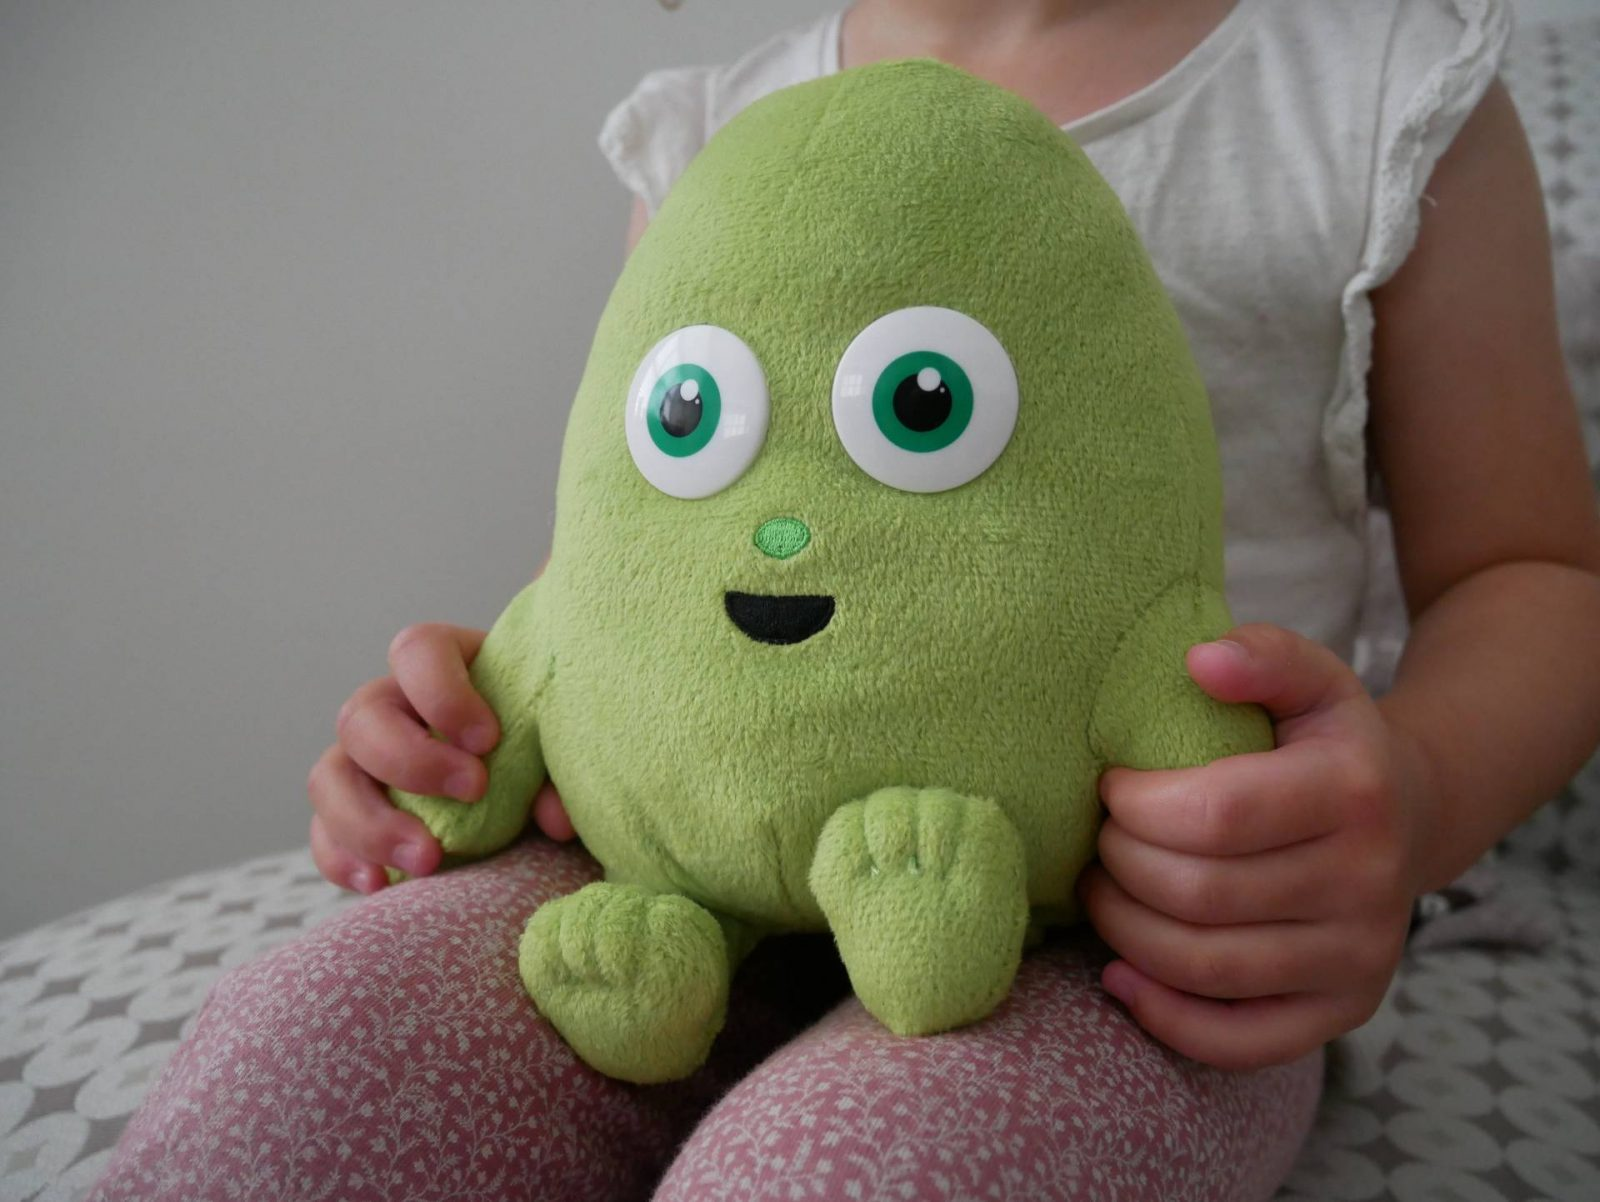 Meet Snot…The Toy No-One Wanted